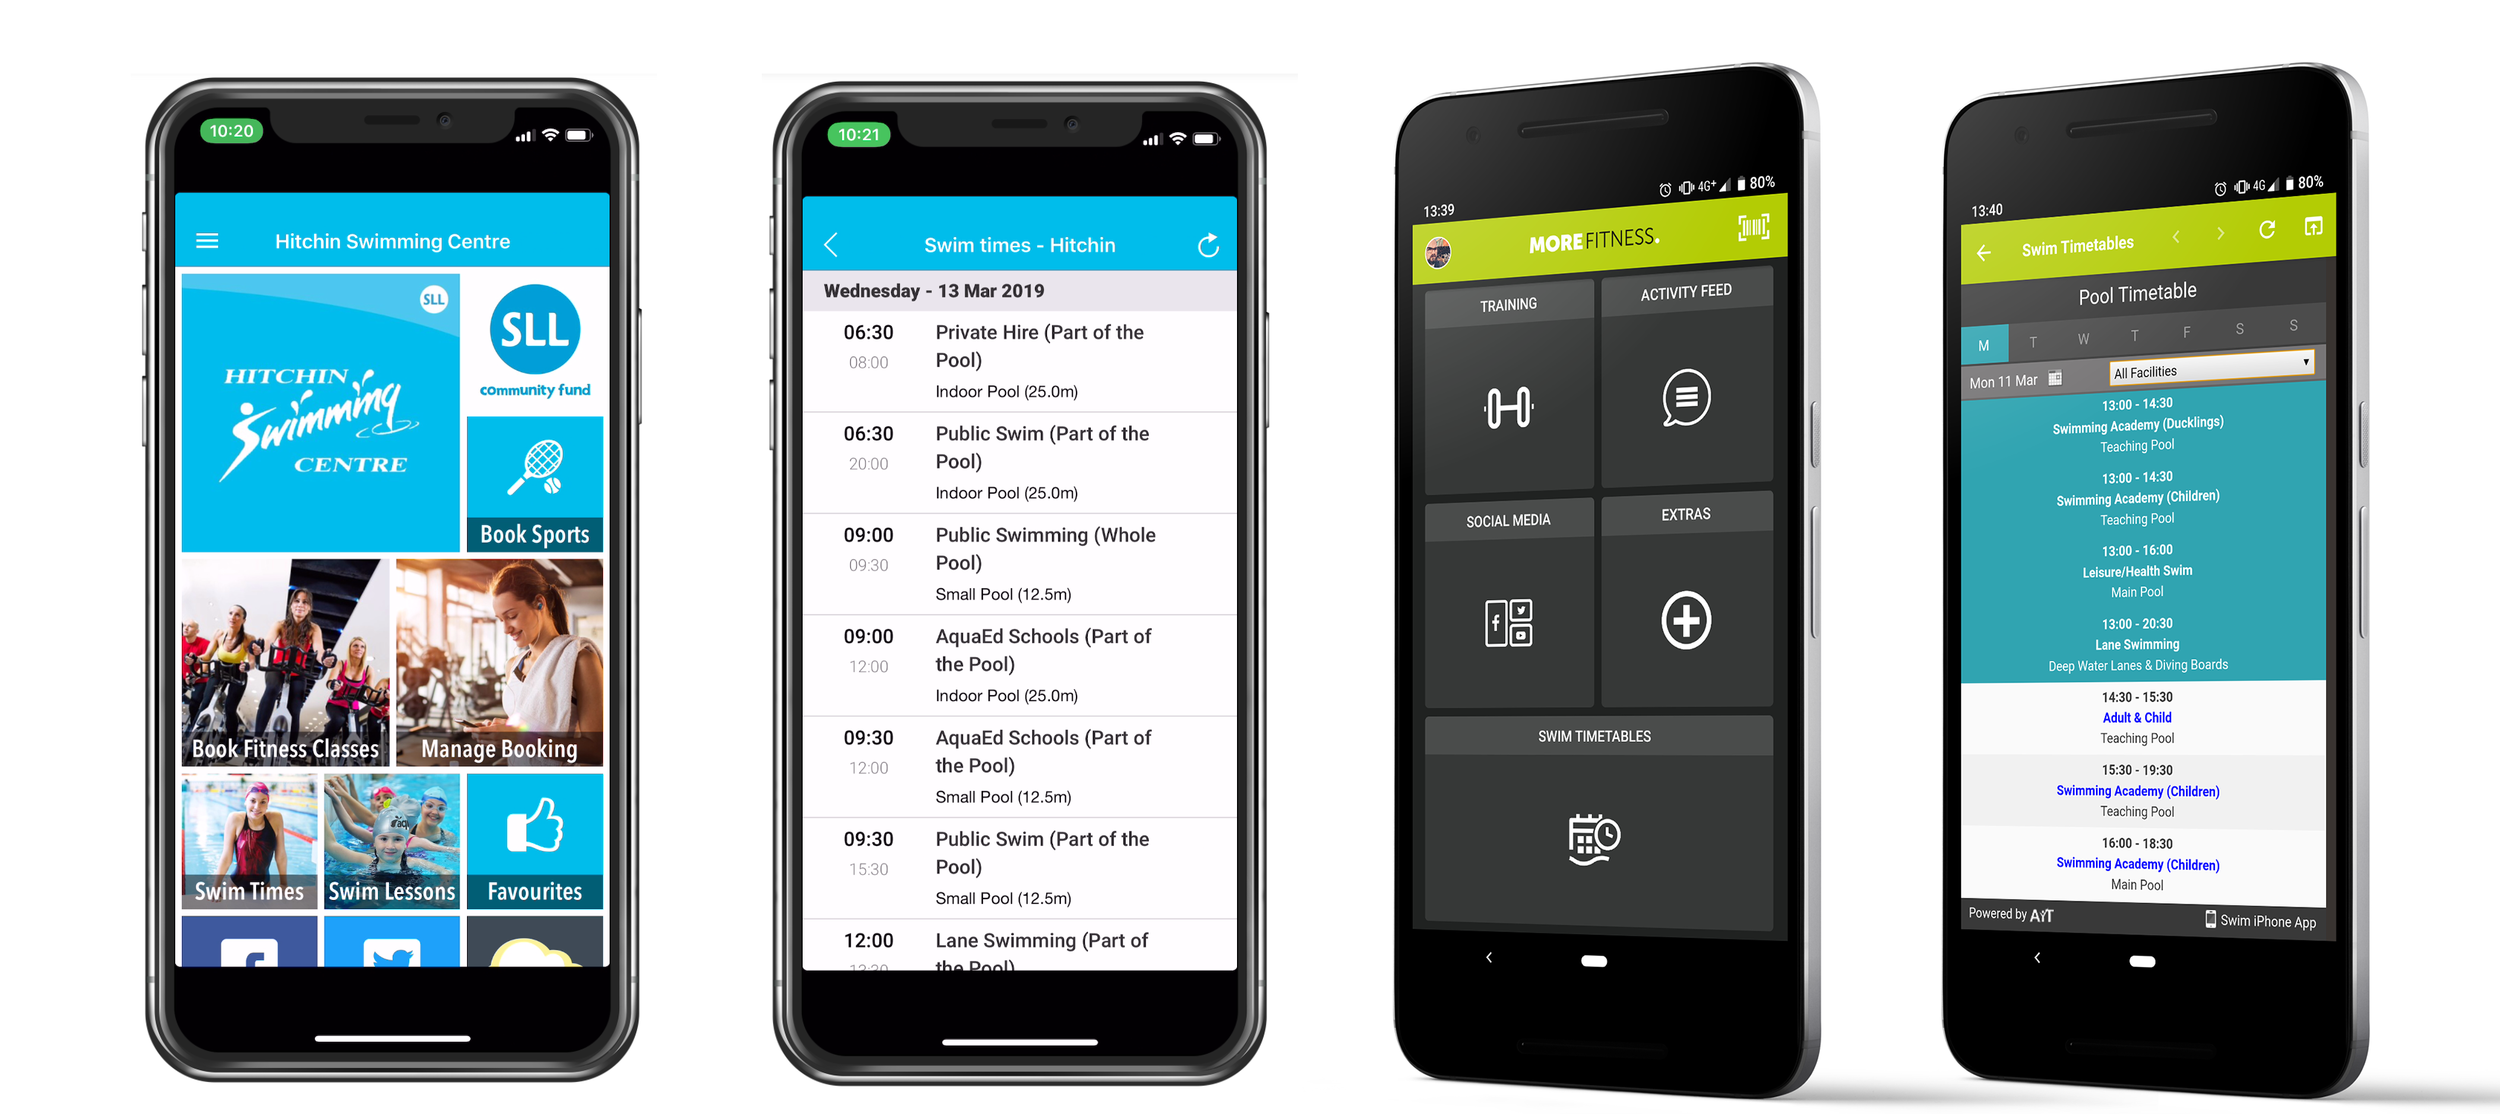 Examples of AiT timetable tiles in Legendware (Stevenage Leisure) and Netpulse (Serco Leisure) powered mobile apps